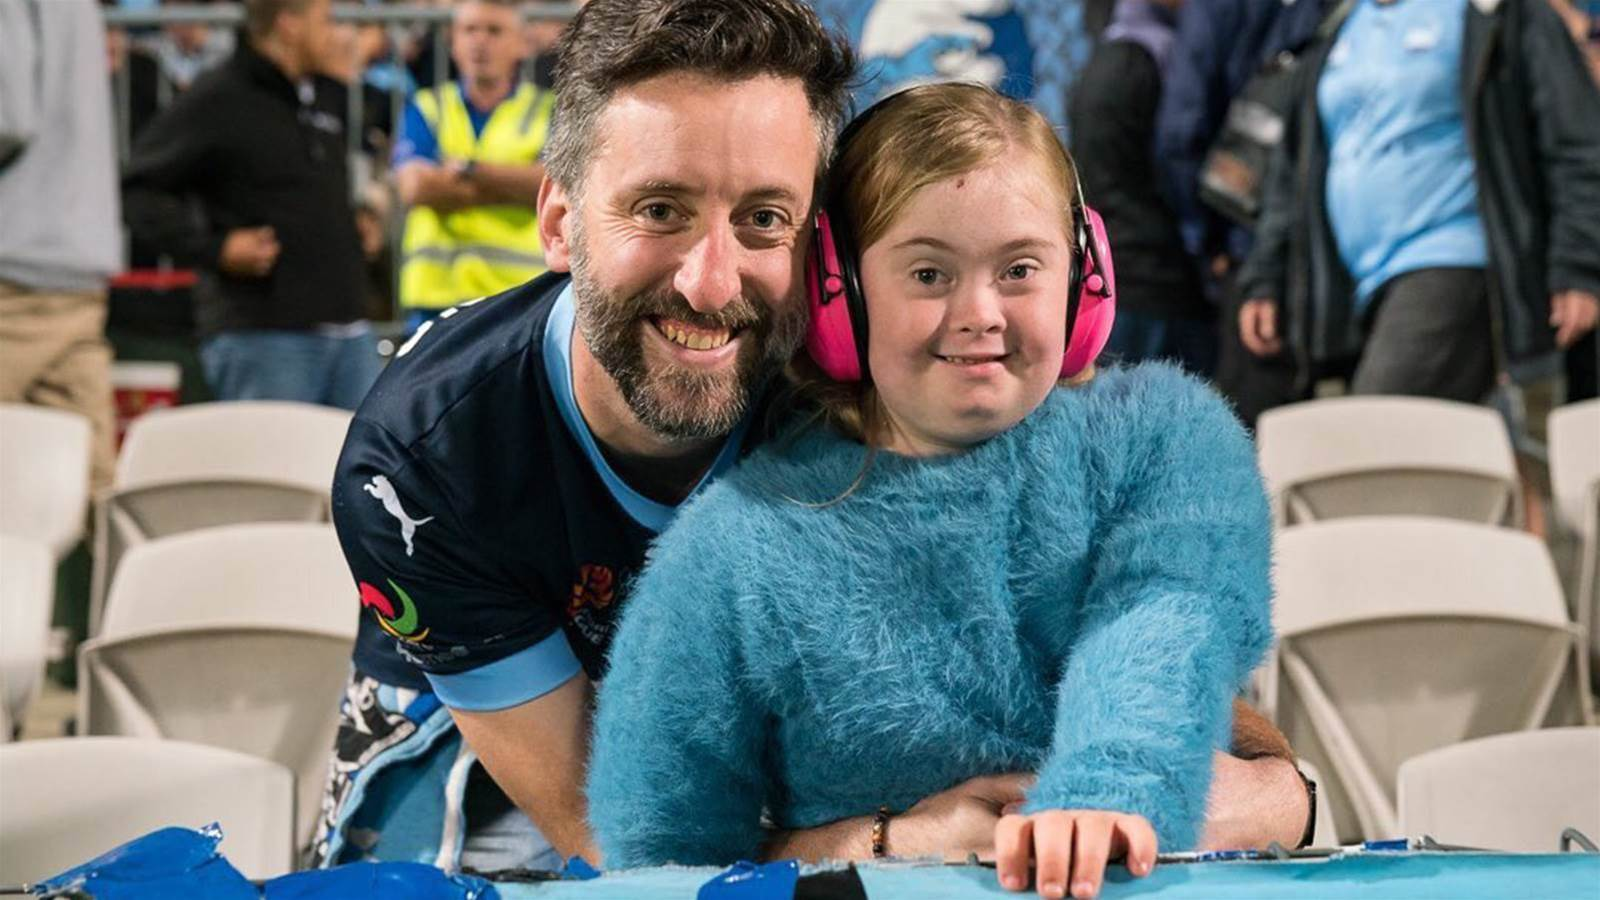 FFA demand answers from cops over eviction of girl with special needs